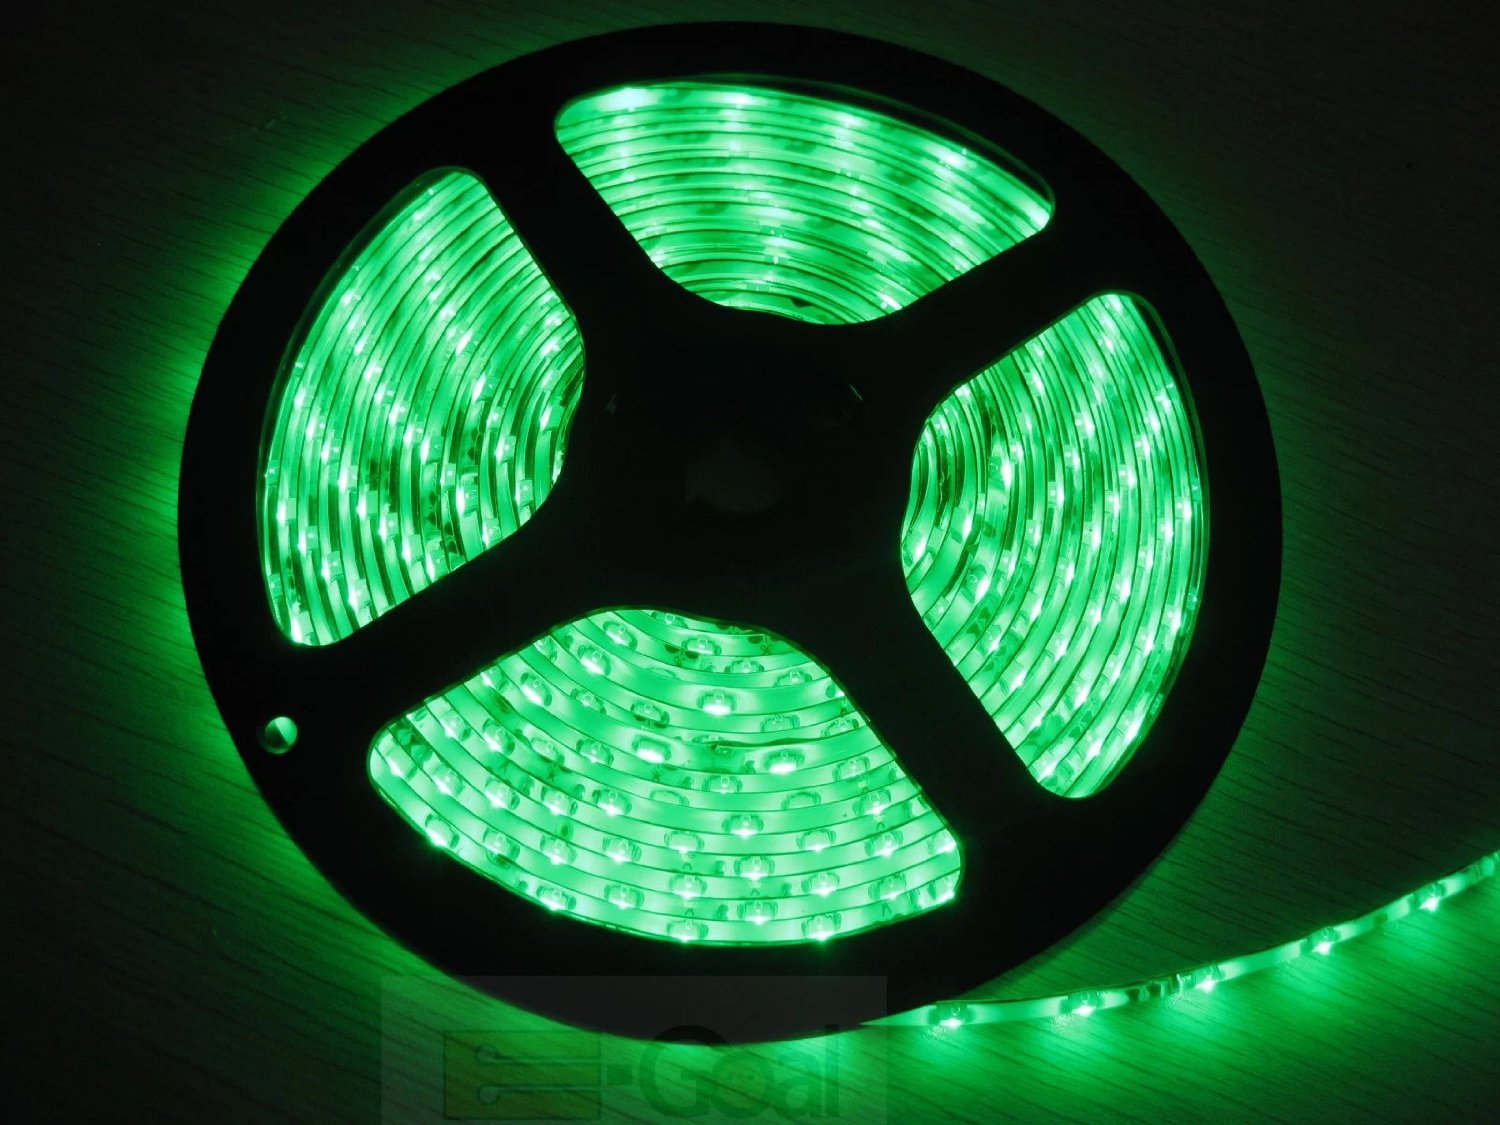 Led strip light 5m for sale in jamaica jadeals led strip light 5m mozeypictures Image collections